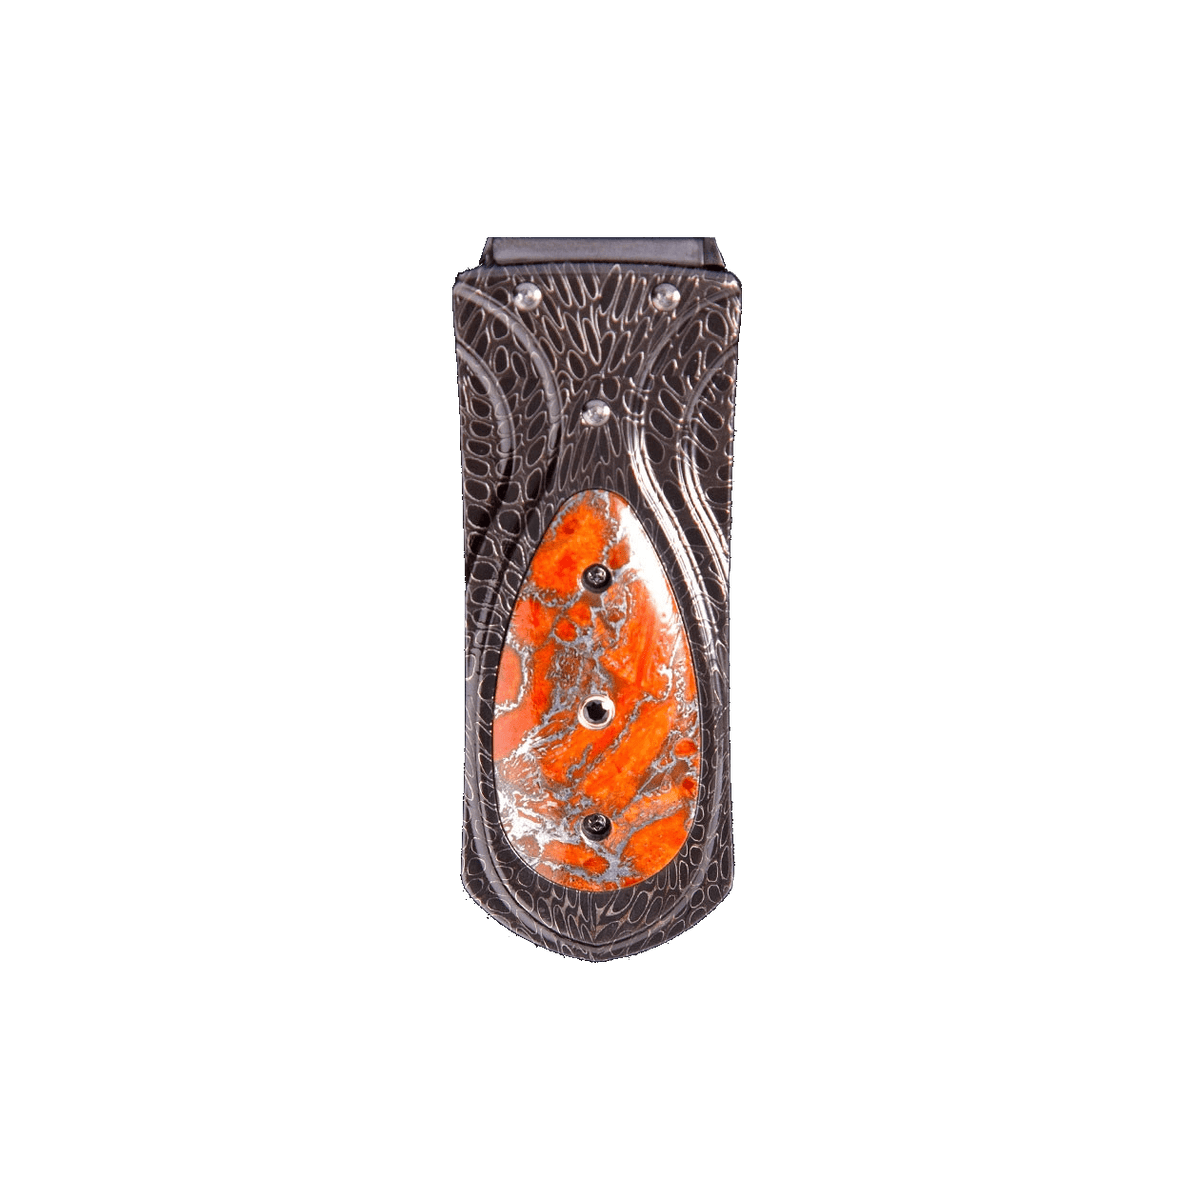 Spinel Zurich Sunrise Money Clip